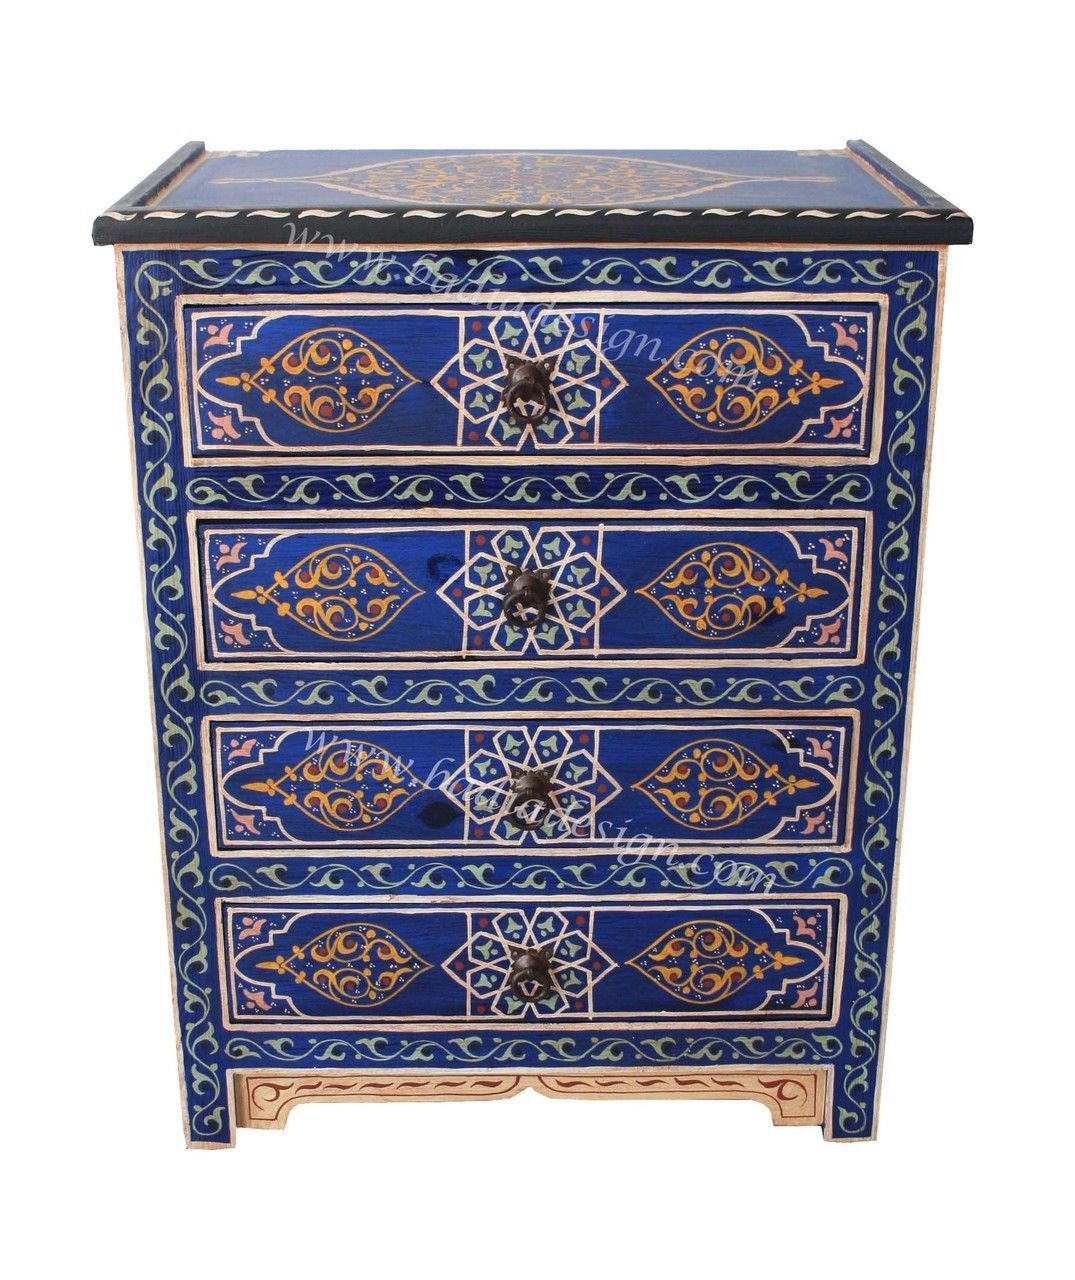 Hand Painted 4 Drawer Nightstand Imported From Morocco By Badia Design Inc Painted Night Stands Painted Bedside Tables Hand Painted Dressers